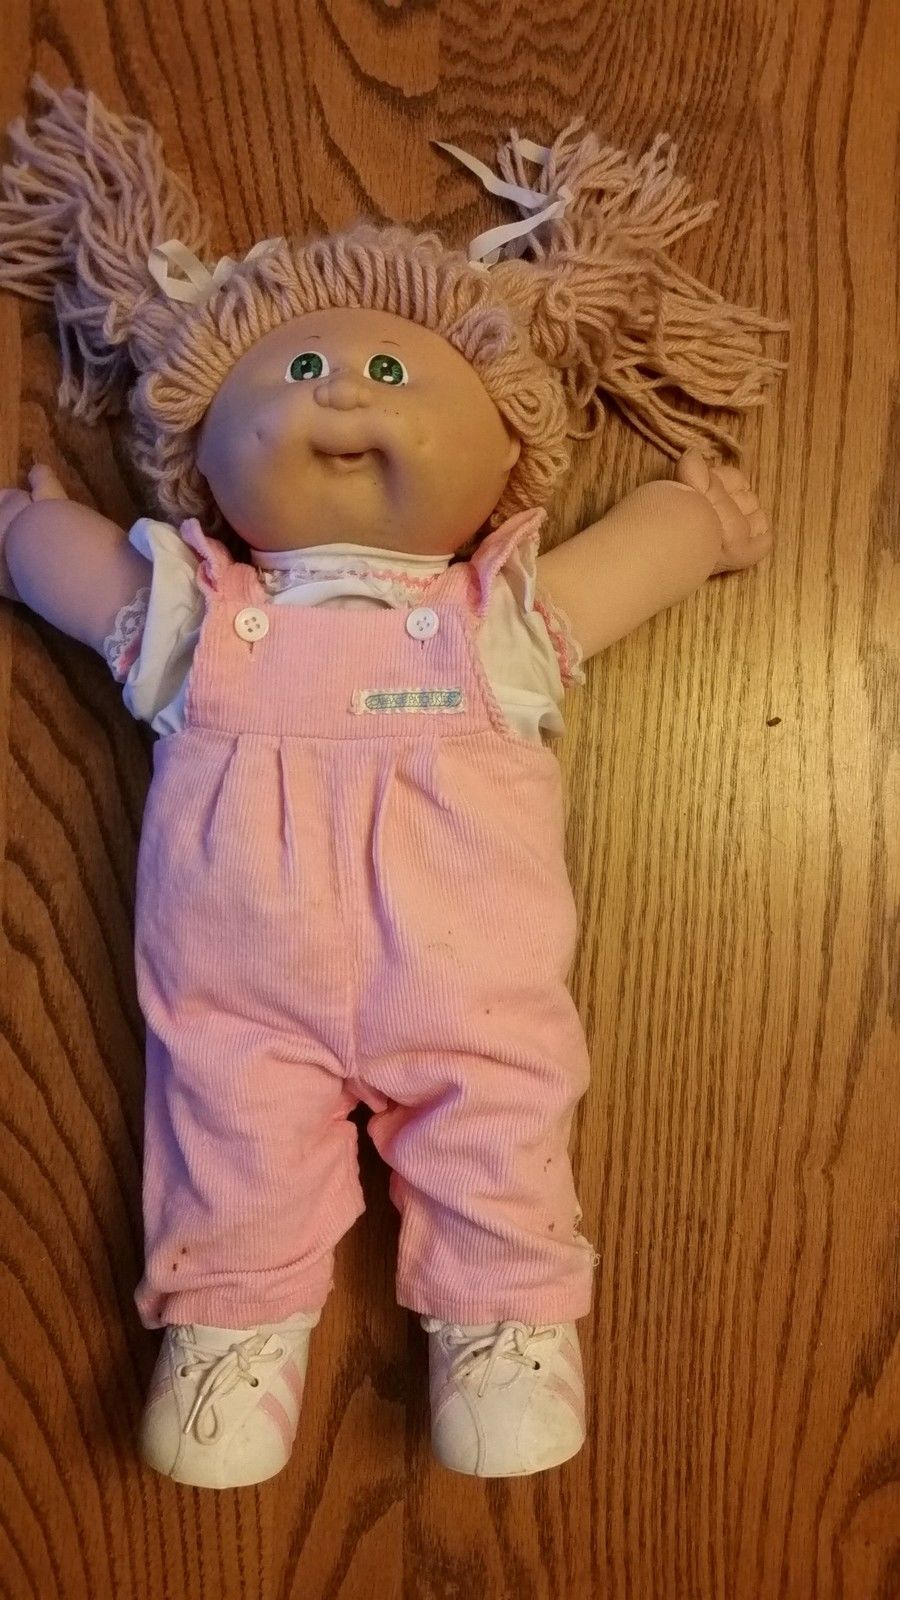 Vintage 1978 1982 Cabbage Patch Doll Yellow Hair Blue Eyes Pink Overalls Ebay Cabbage Patch Kids Costume Cabbage Patch Kids Clothes Cabbage Patch Dolls